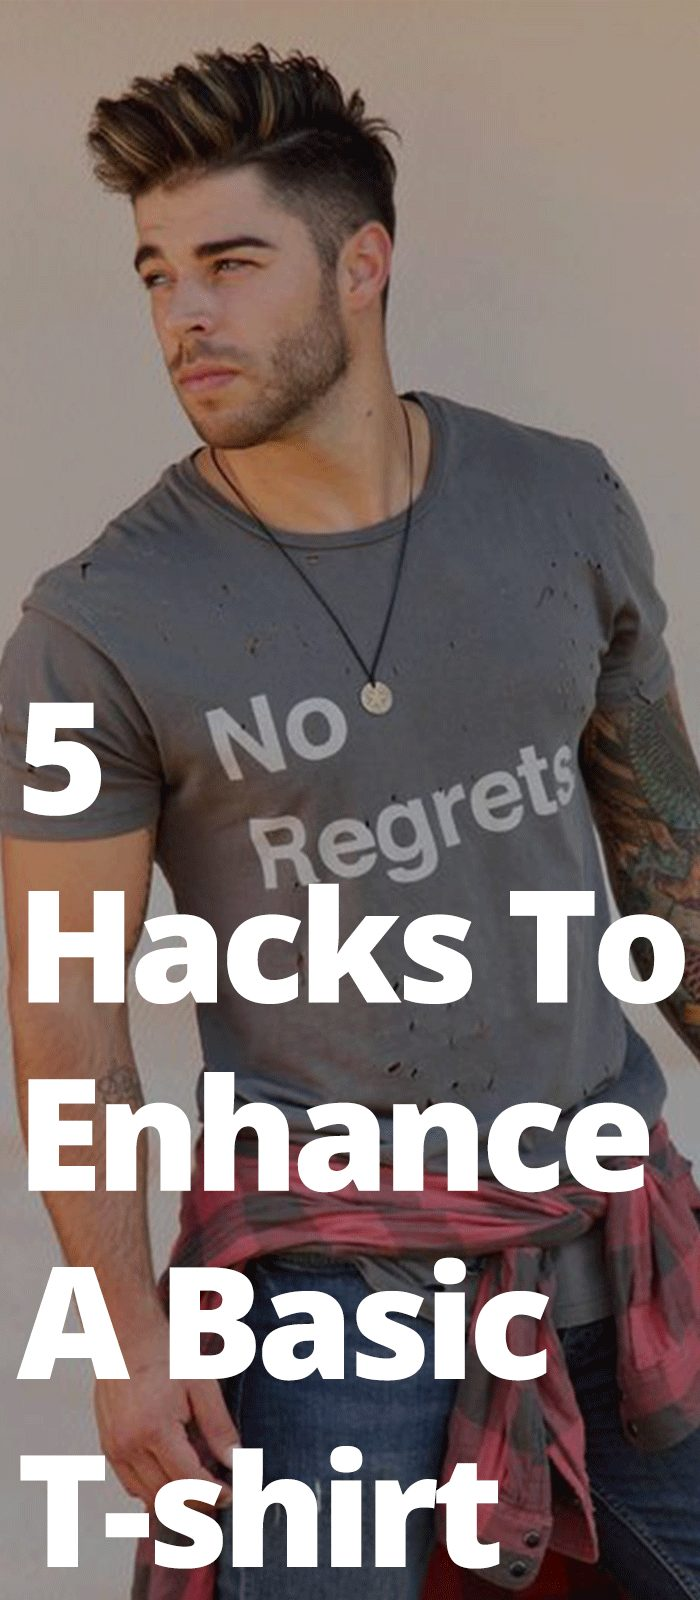 5 Hacks To Enhance A Basic T-shirt